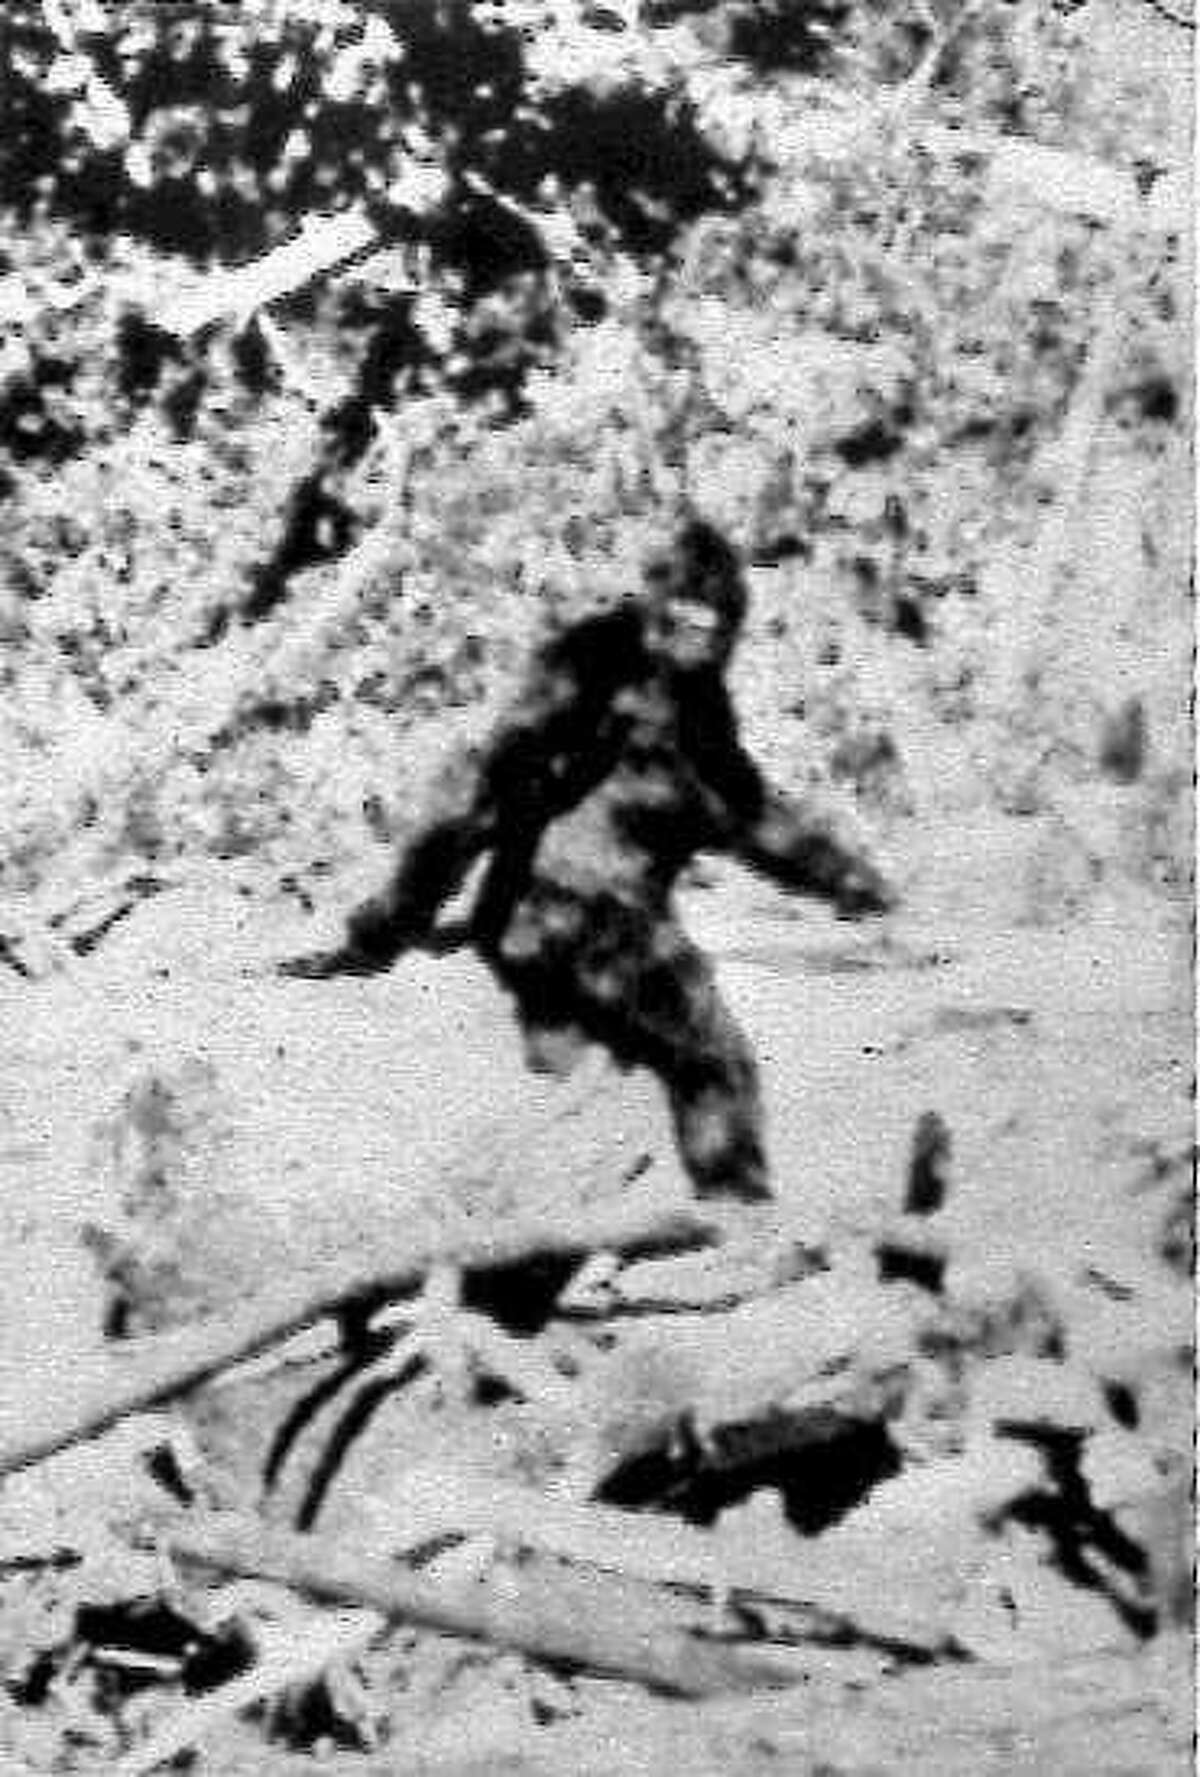 FILE--Photographers Roger Patterson and Bob Gimlin made this image Oct. 20, 1967, purportedly showing a female Bigfoot, during a horseback search in northern California for Sasquatch or 'Bigfoot'. Now, four magnified frames of the 16 mm footage show tracings of a bell-shaped fastener at Bigfoot's waist and after decades of doubt, some enthusiasts say the creature in the so-called Patterson-Gimlin Film can finally be dismissed as a man in a monkey suit. (AP Photo/File)